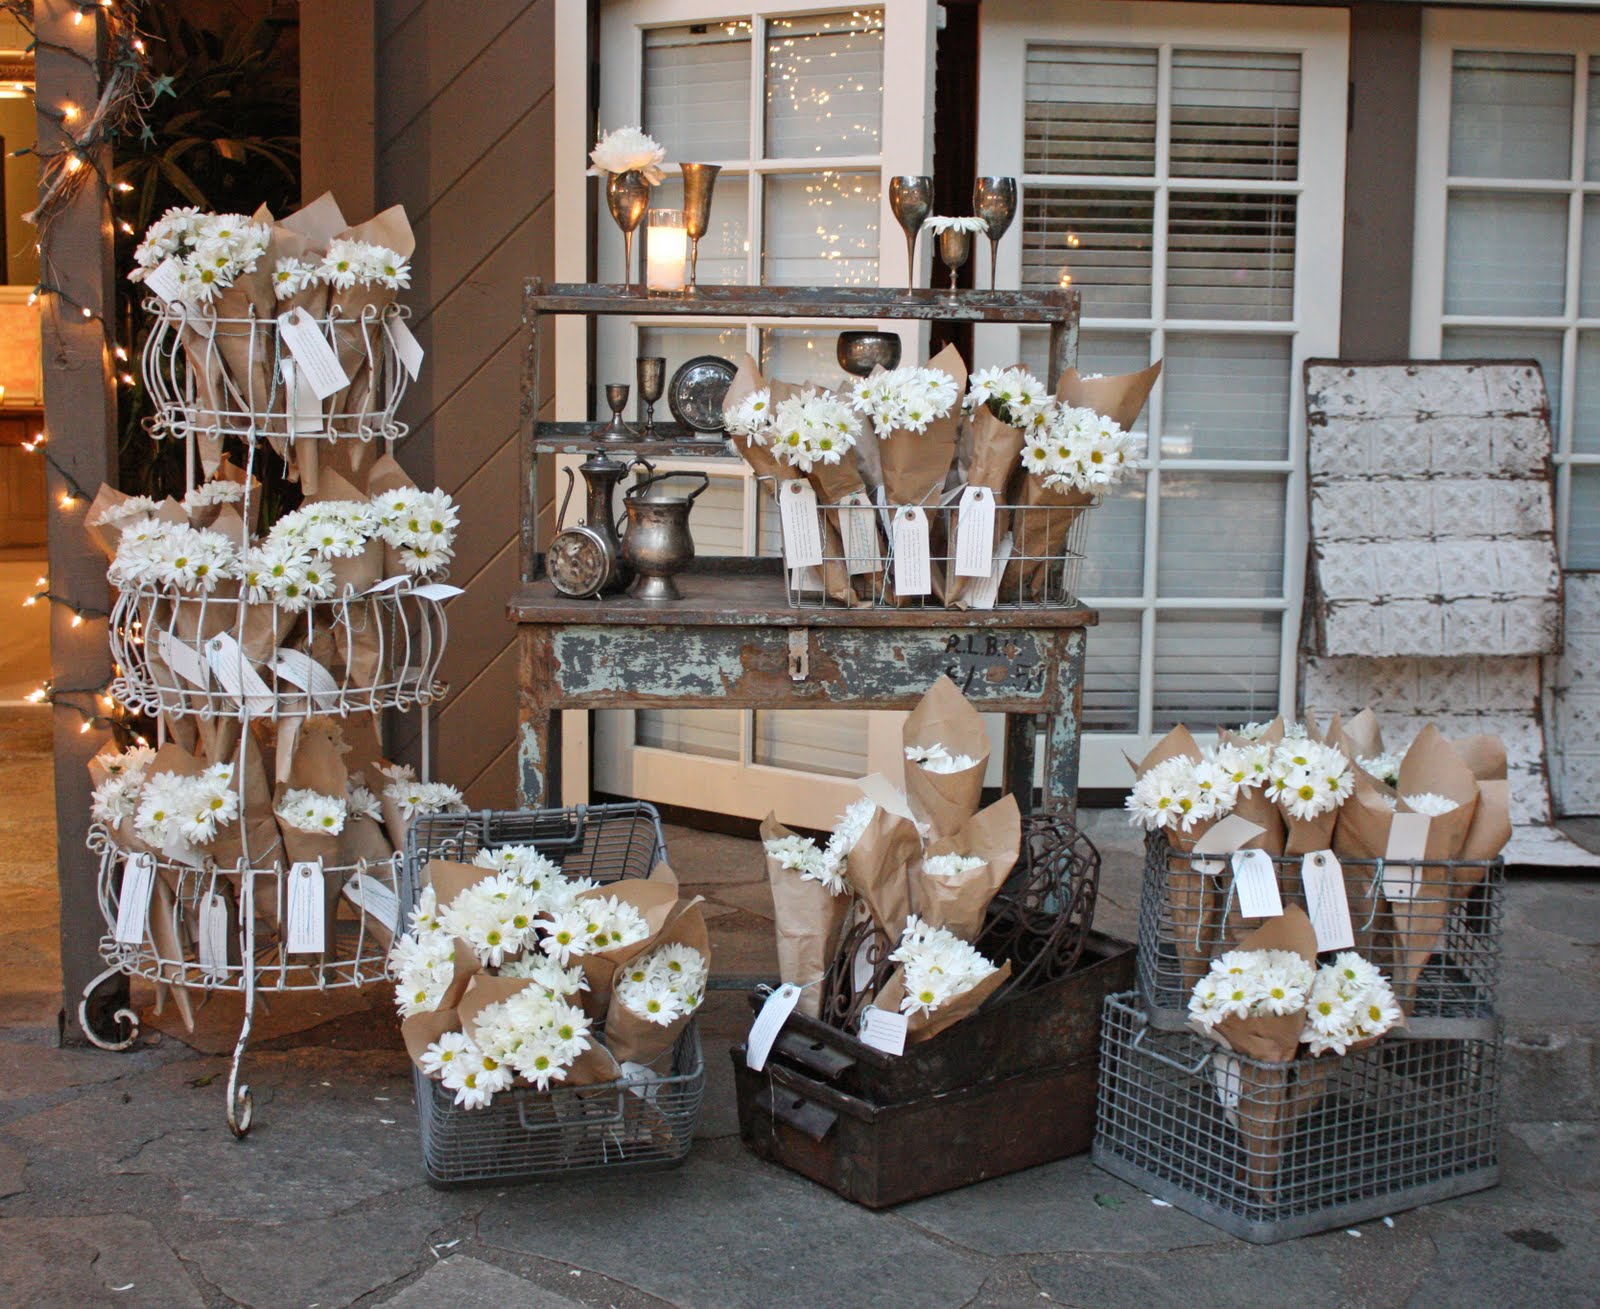 sTORIbook Weddings - Tori and Dean's Shabby Chic Wedding - Behind